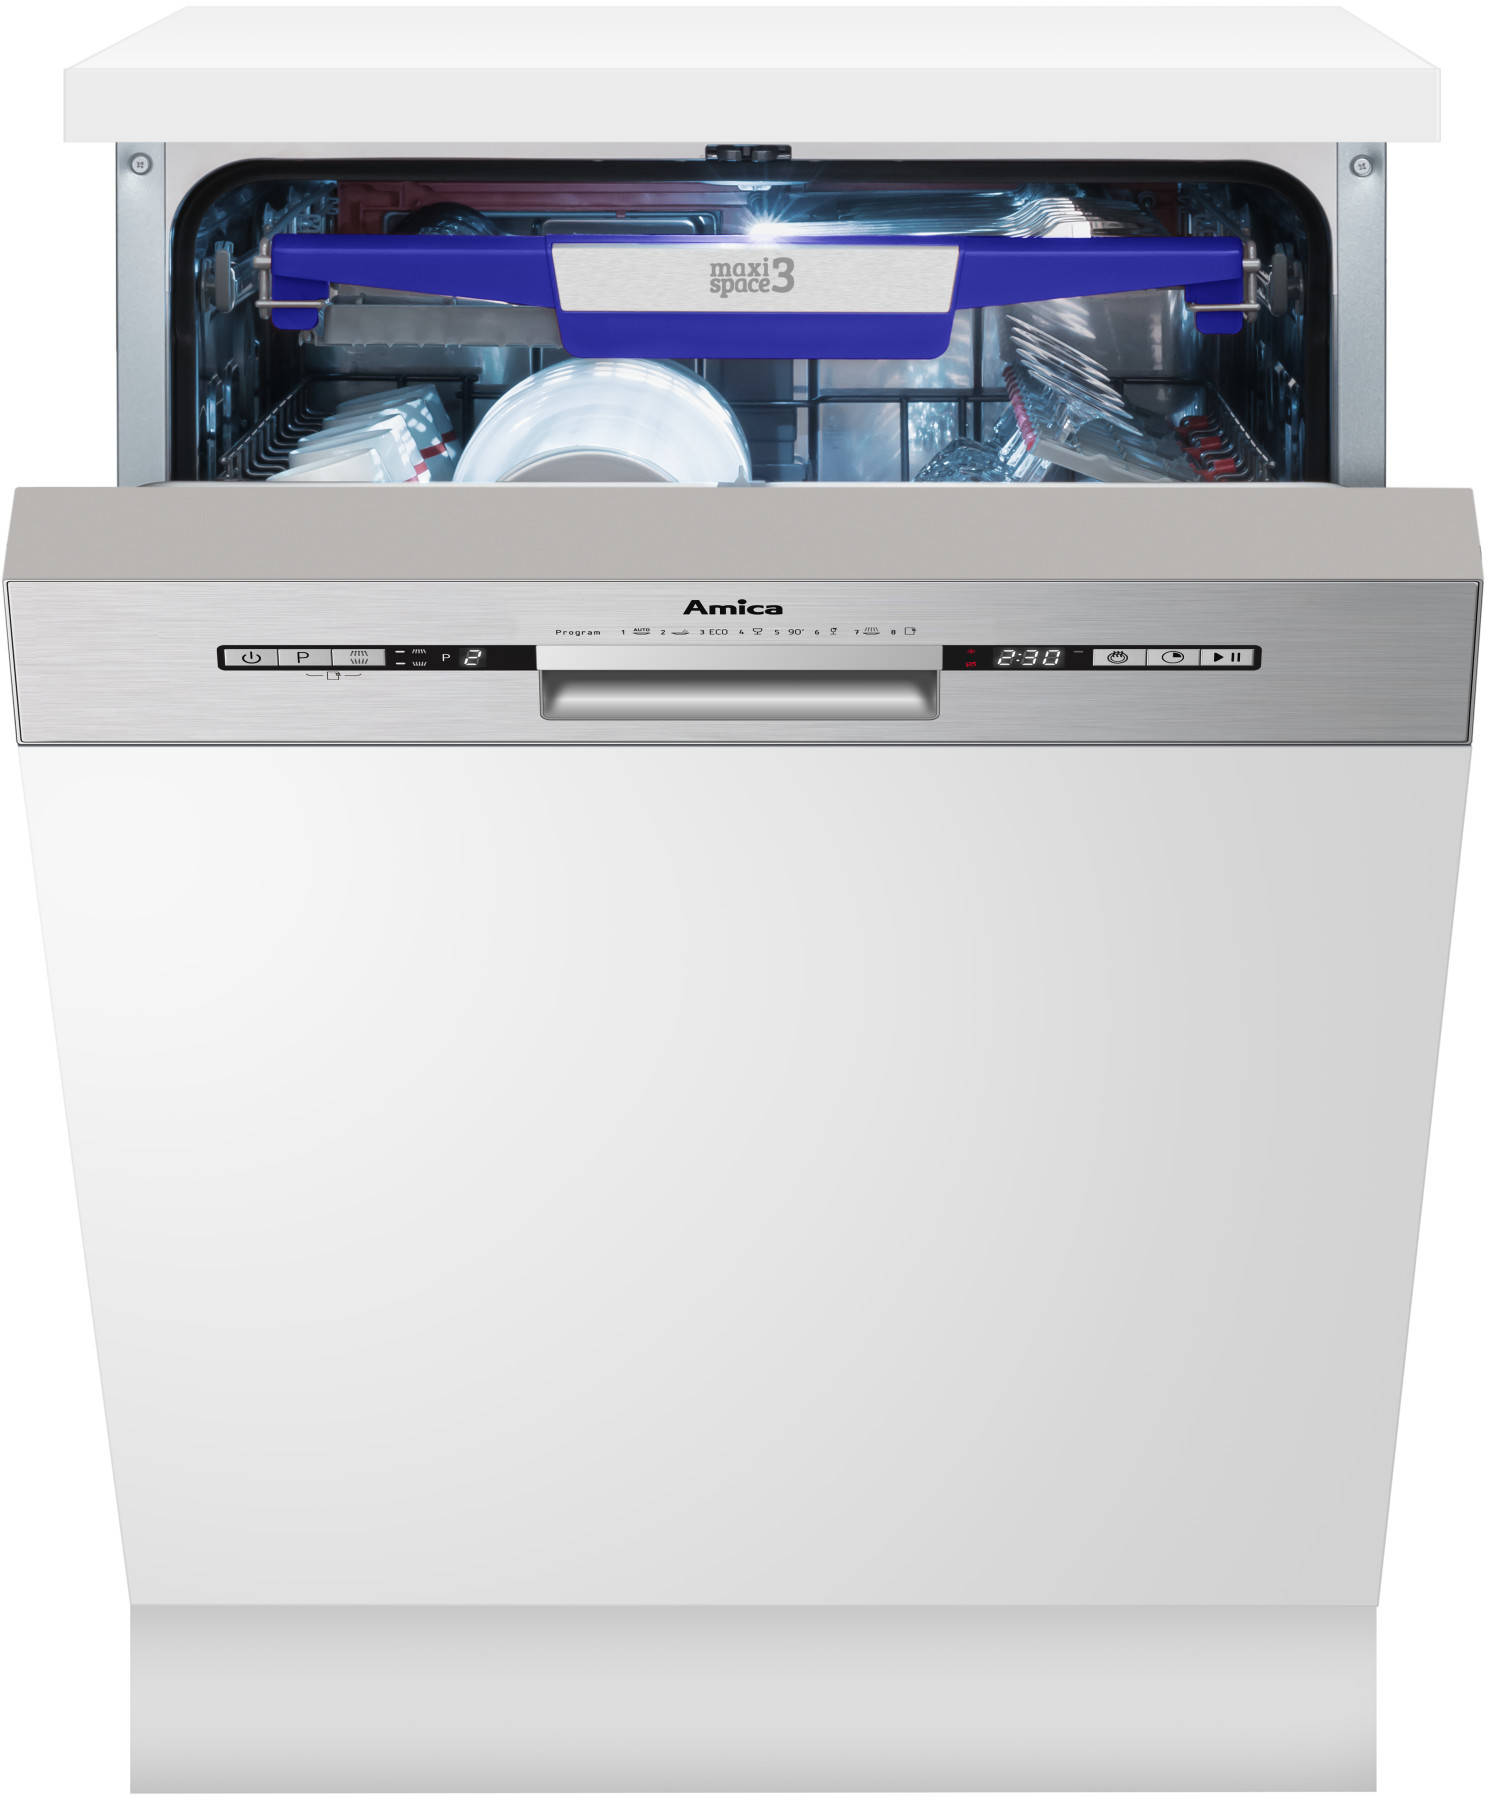 Amica DSM637ACNTS